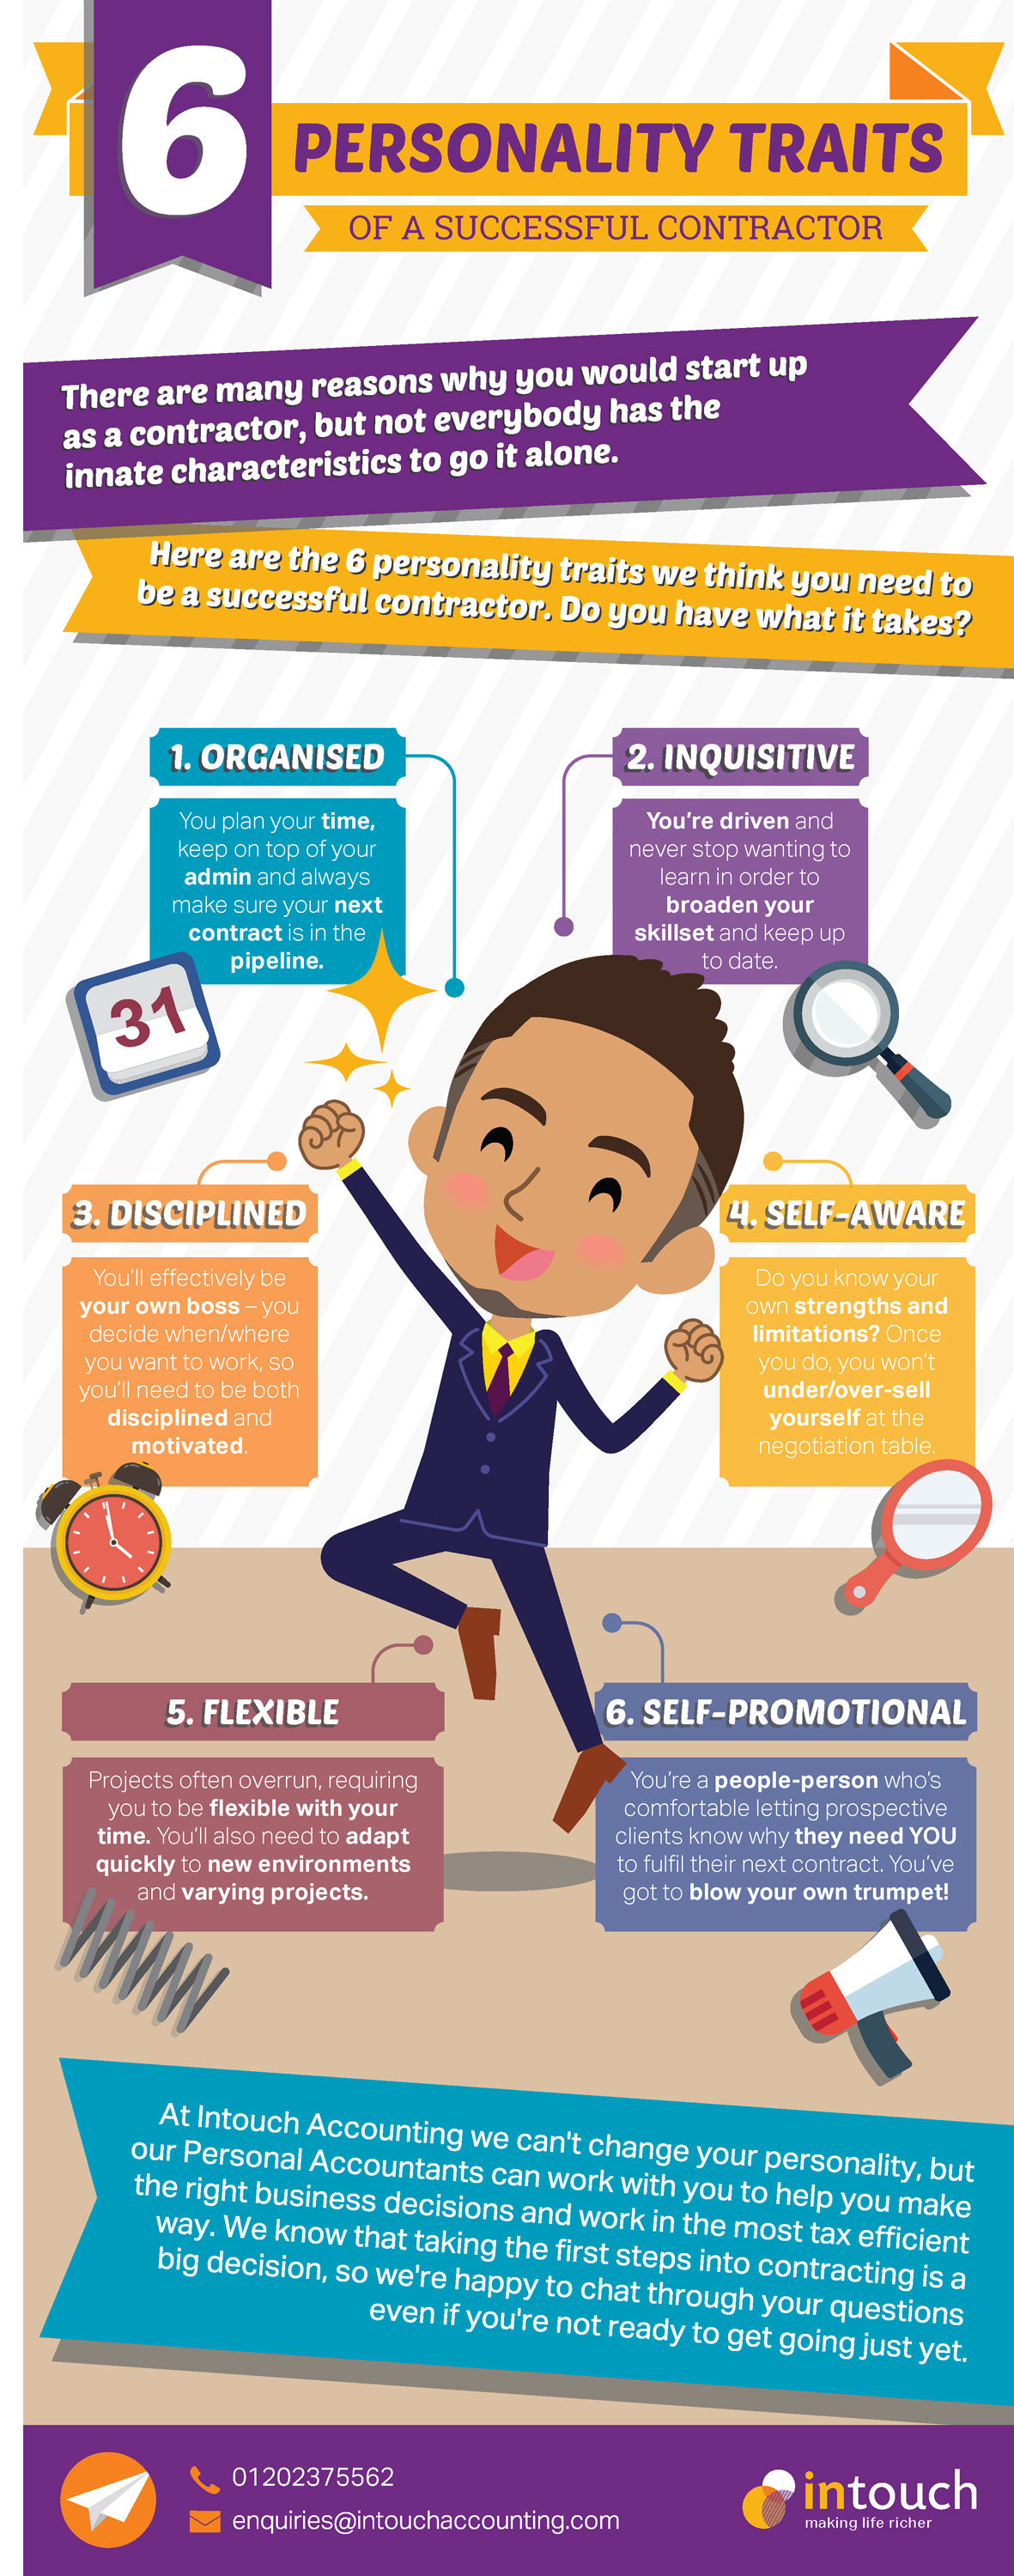 6 Personality Traits of a successful contractor